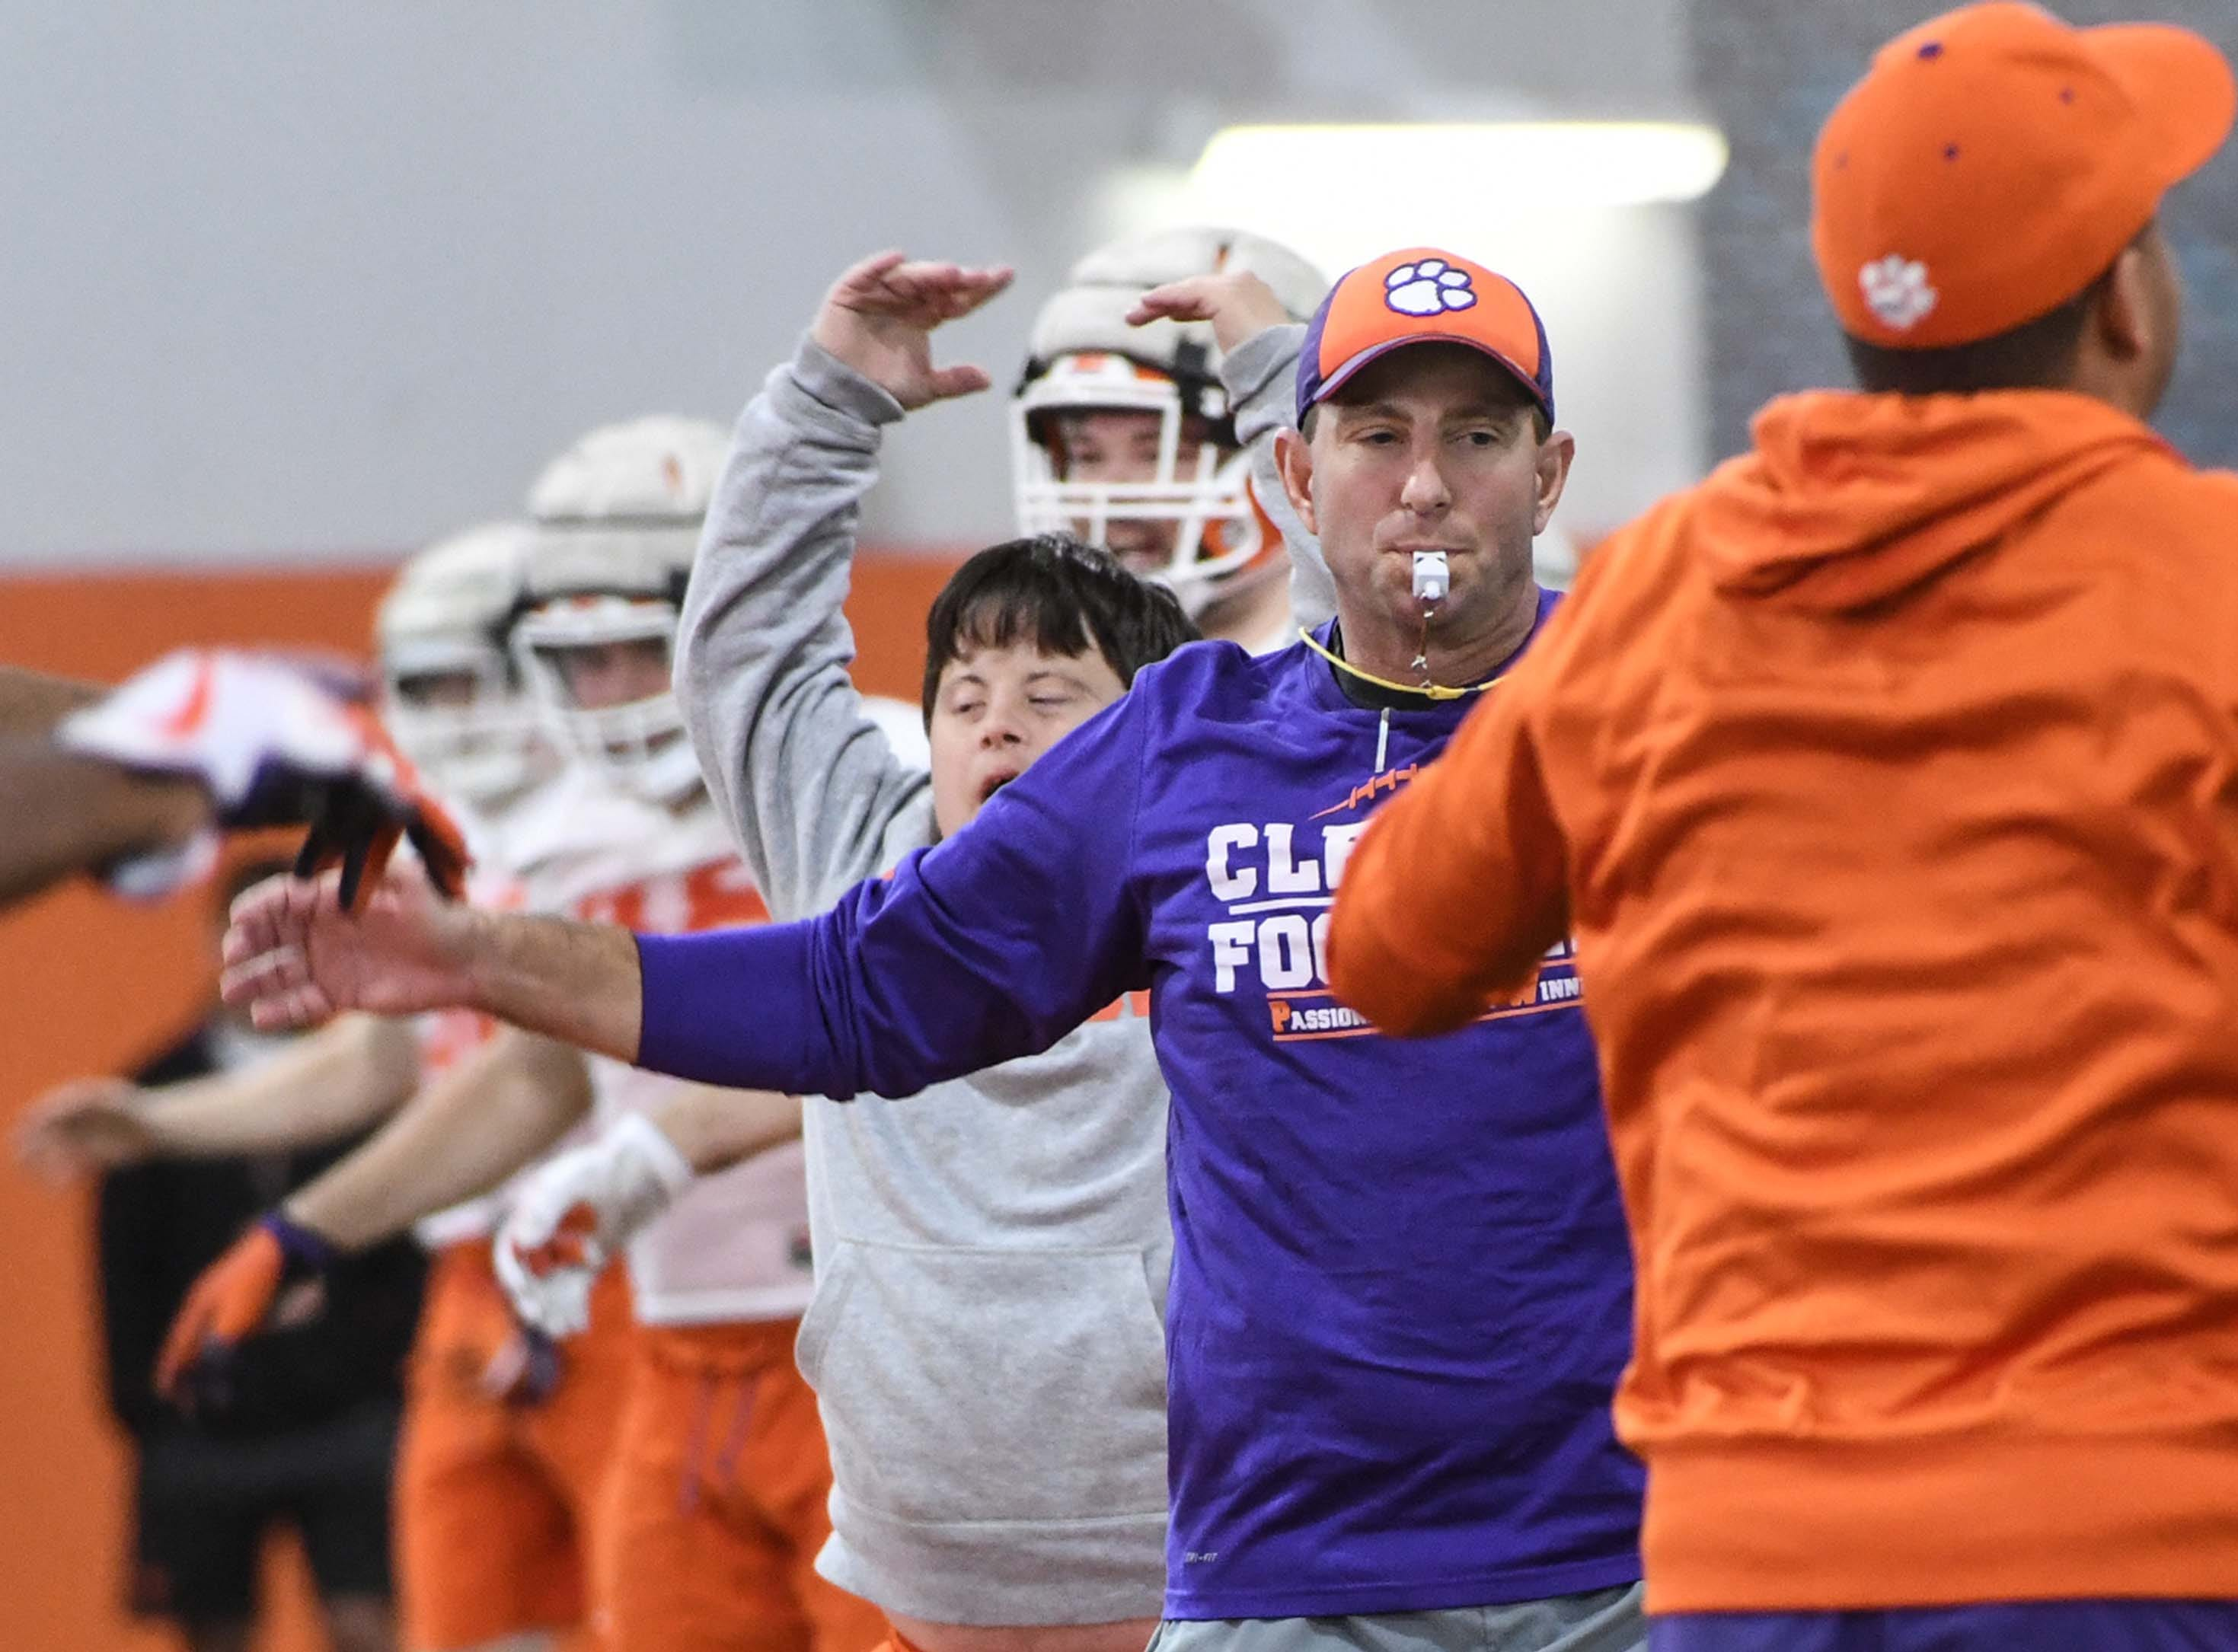 Clemson head coach Dabo Swinney leads jumping jacks during the first practice at the Clemson Indoor Practice Facility in Clemson Wednesday, February 27, 2019.